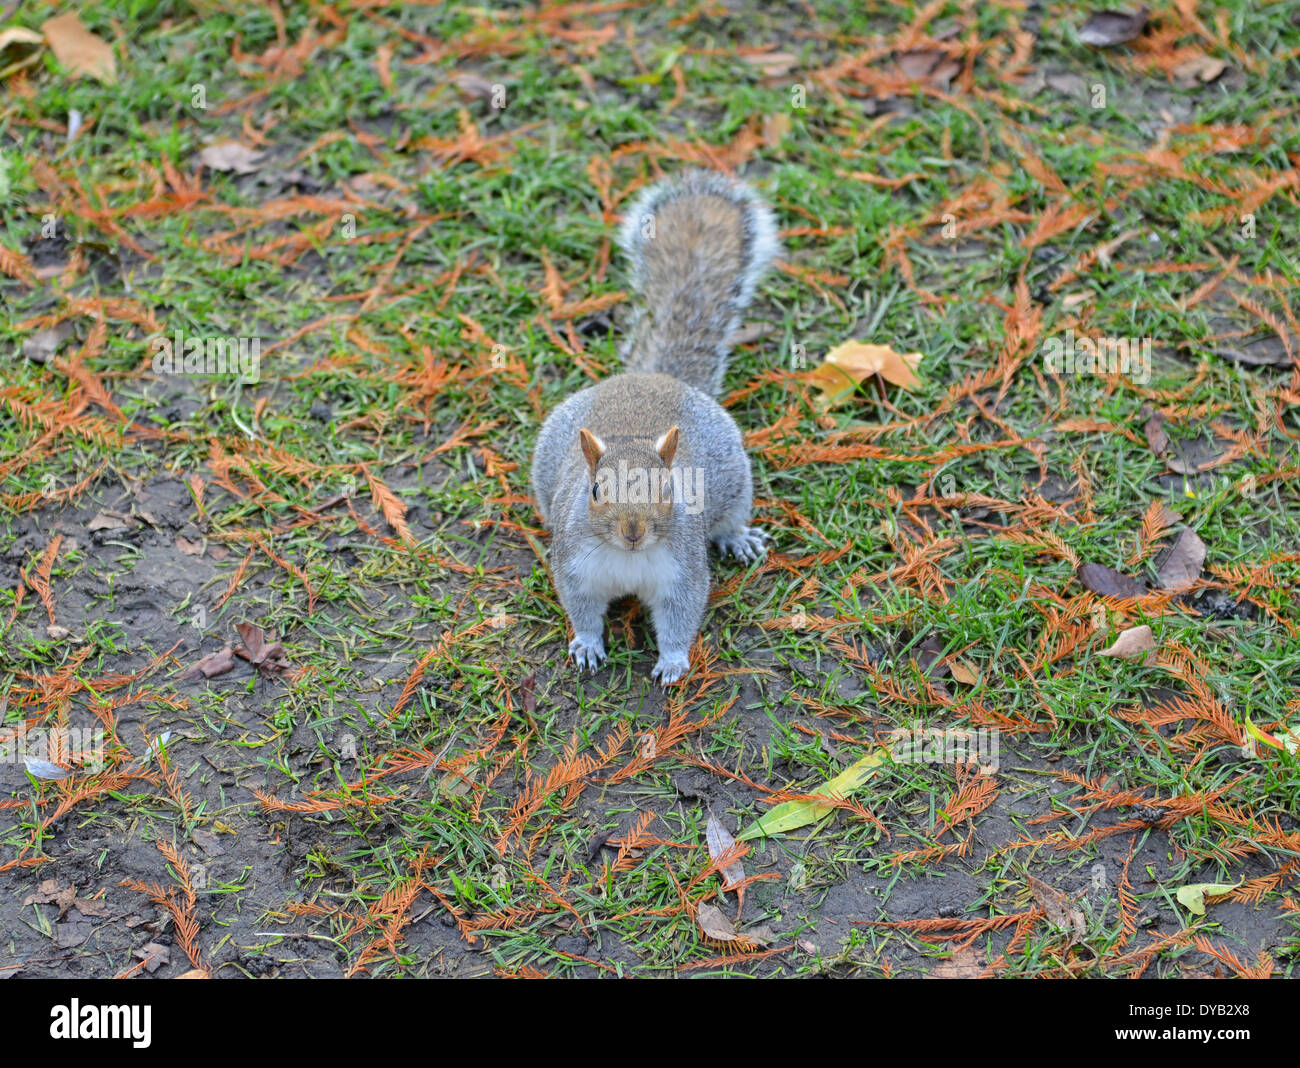 Grey Squirrel in St. James Park, London, UK - Stock Image